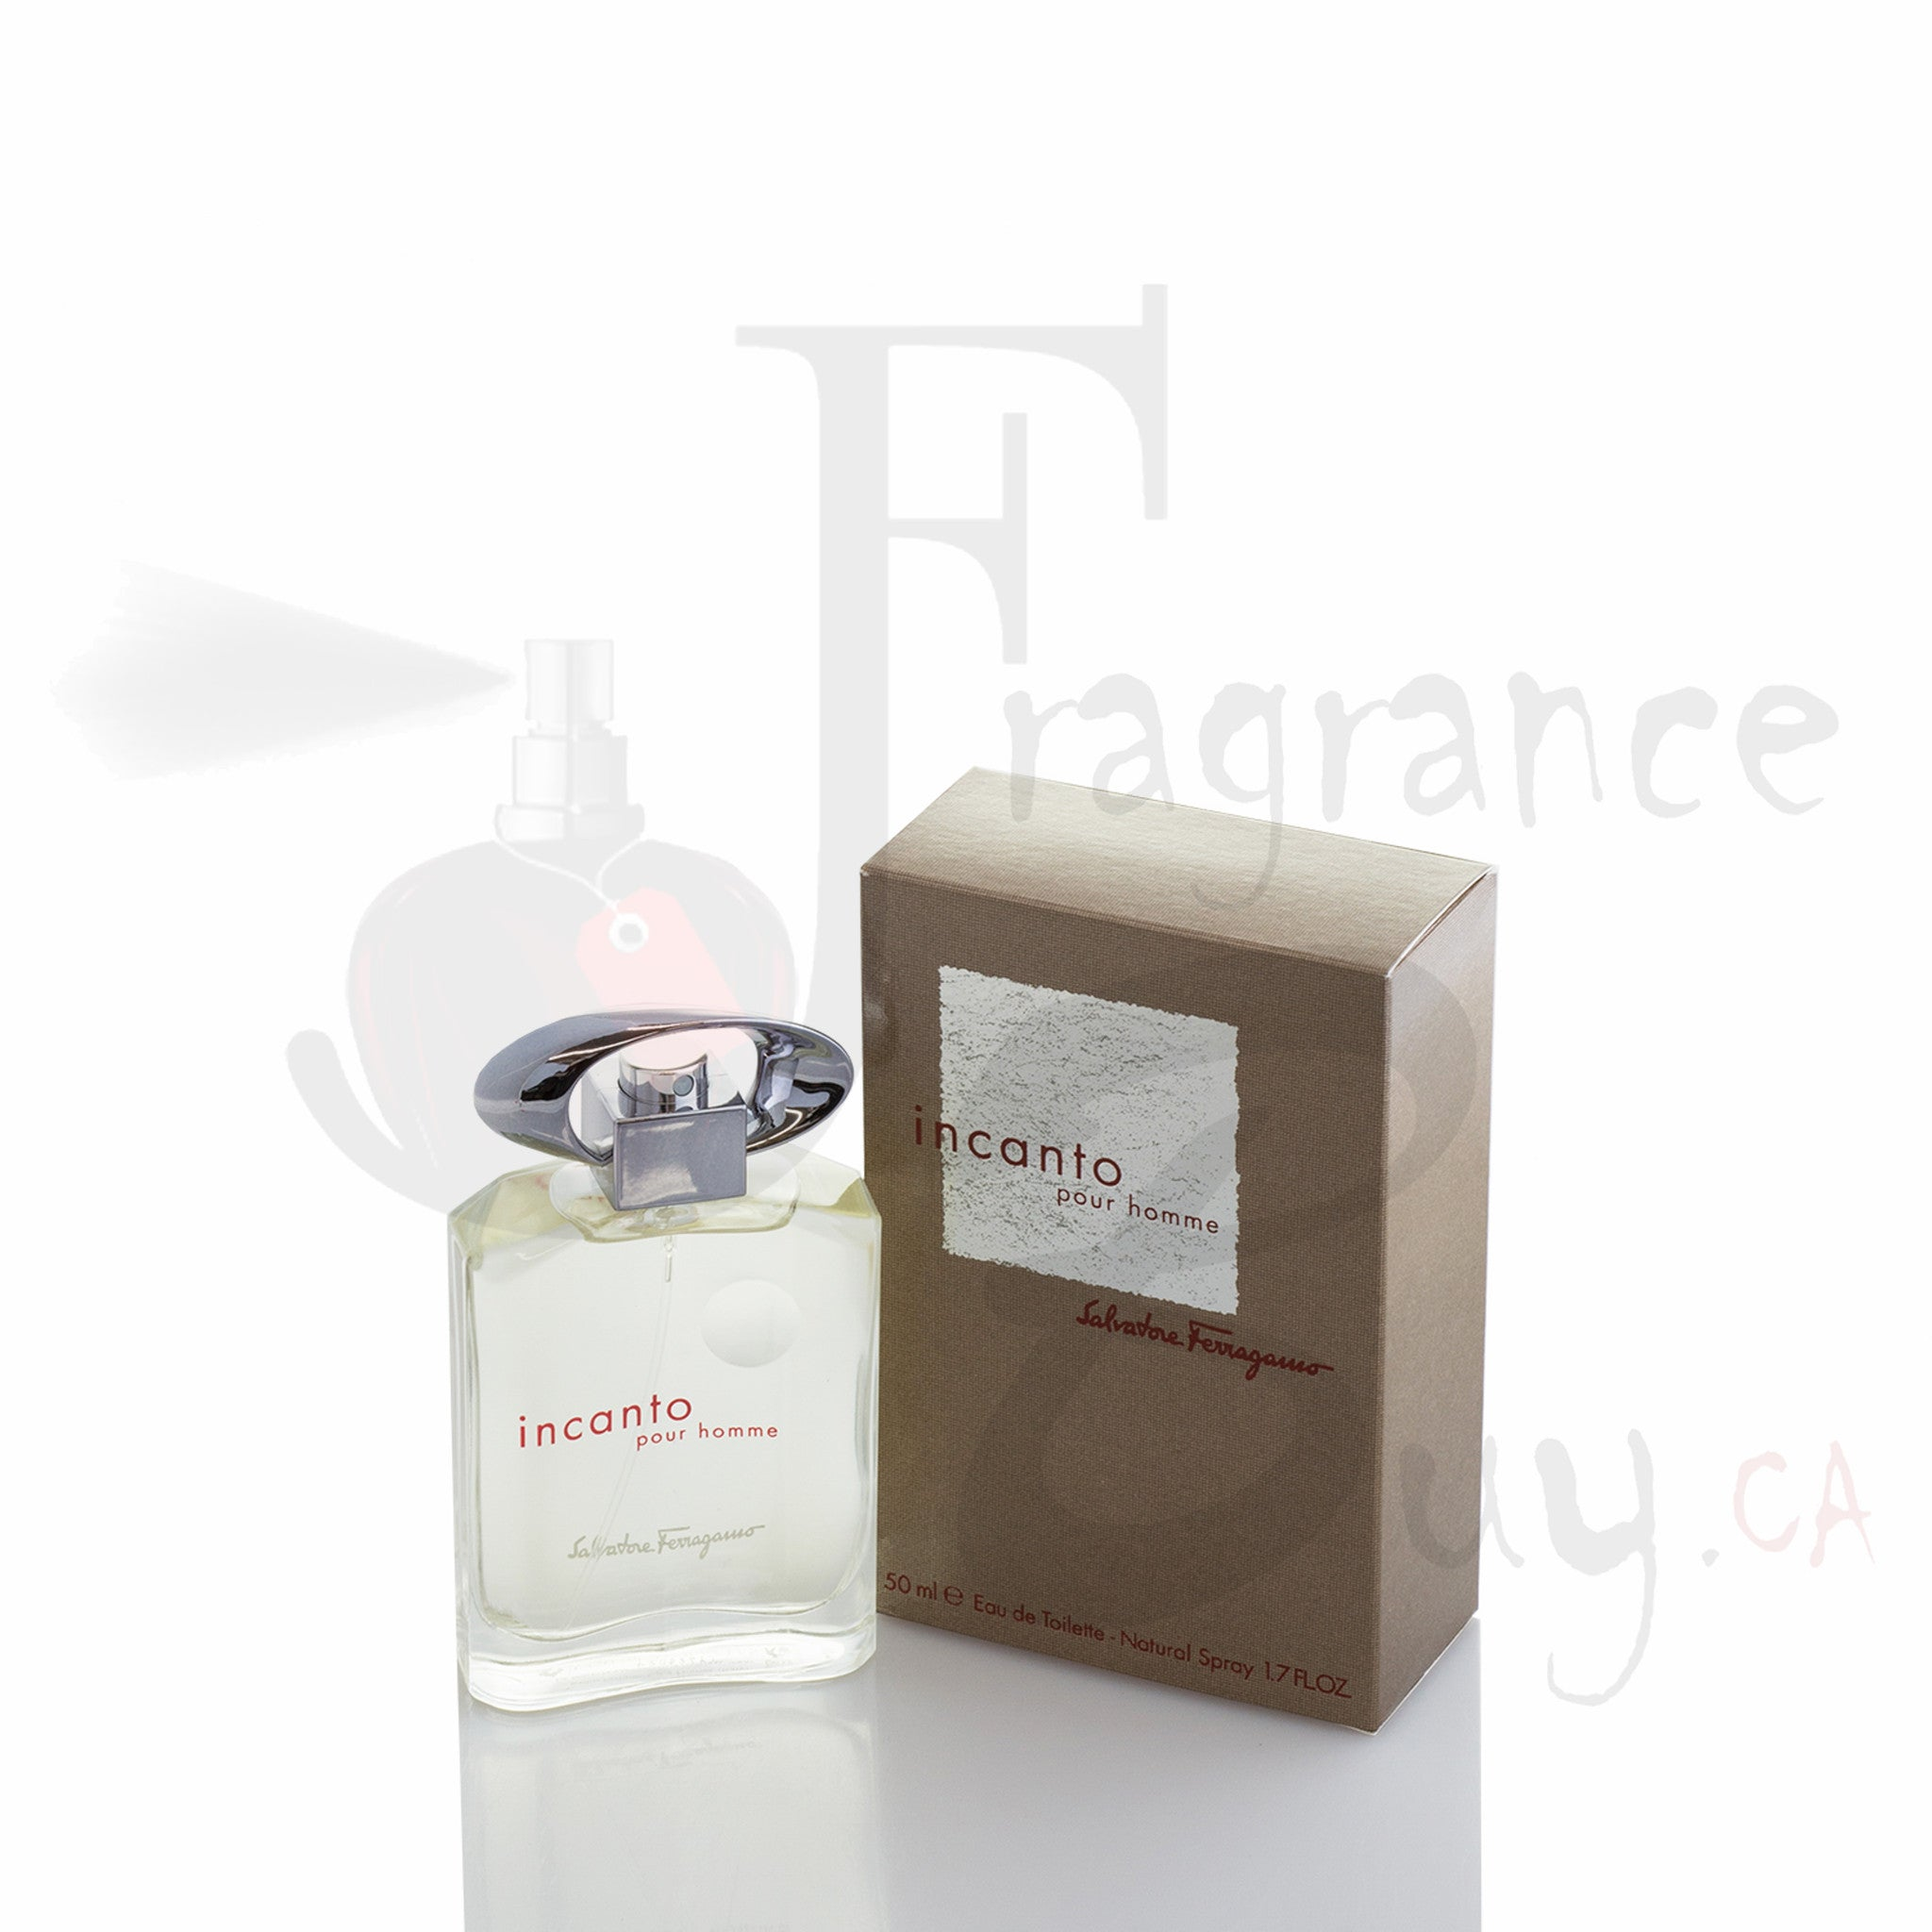 Salvatore Ferragamo Incanto For Man